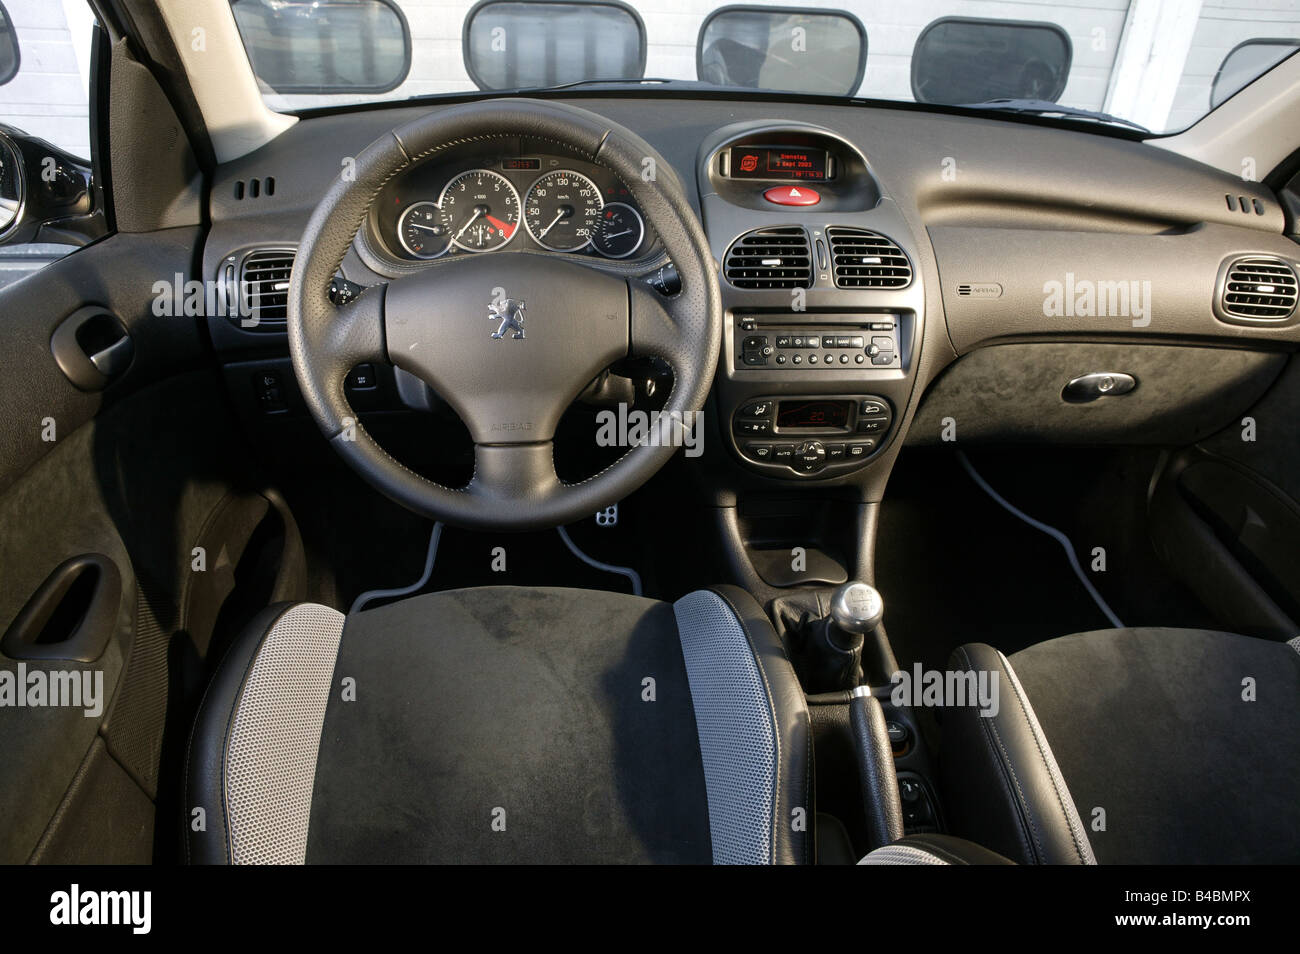 Peugeot 206 Rc High Resolution Stock Photography And Images Alamy